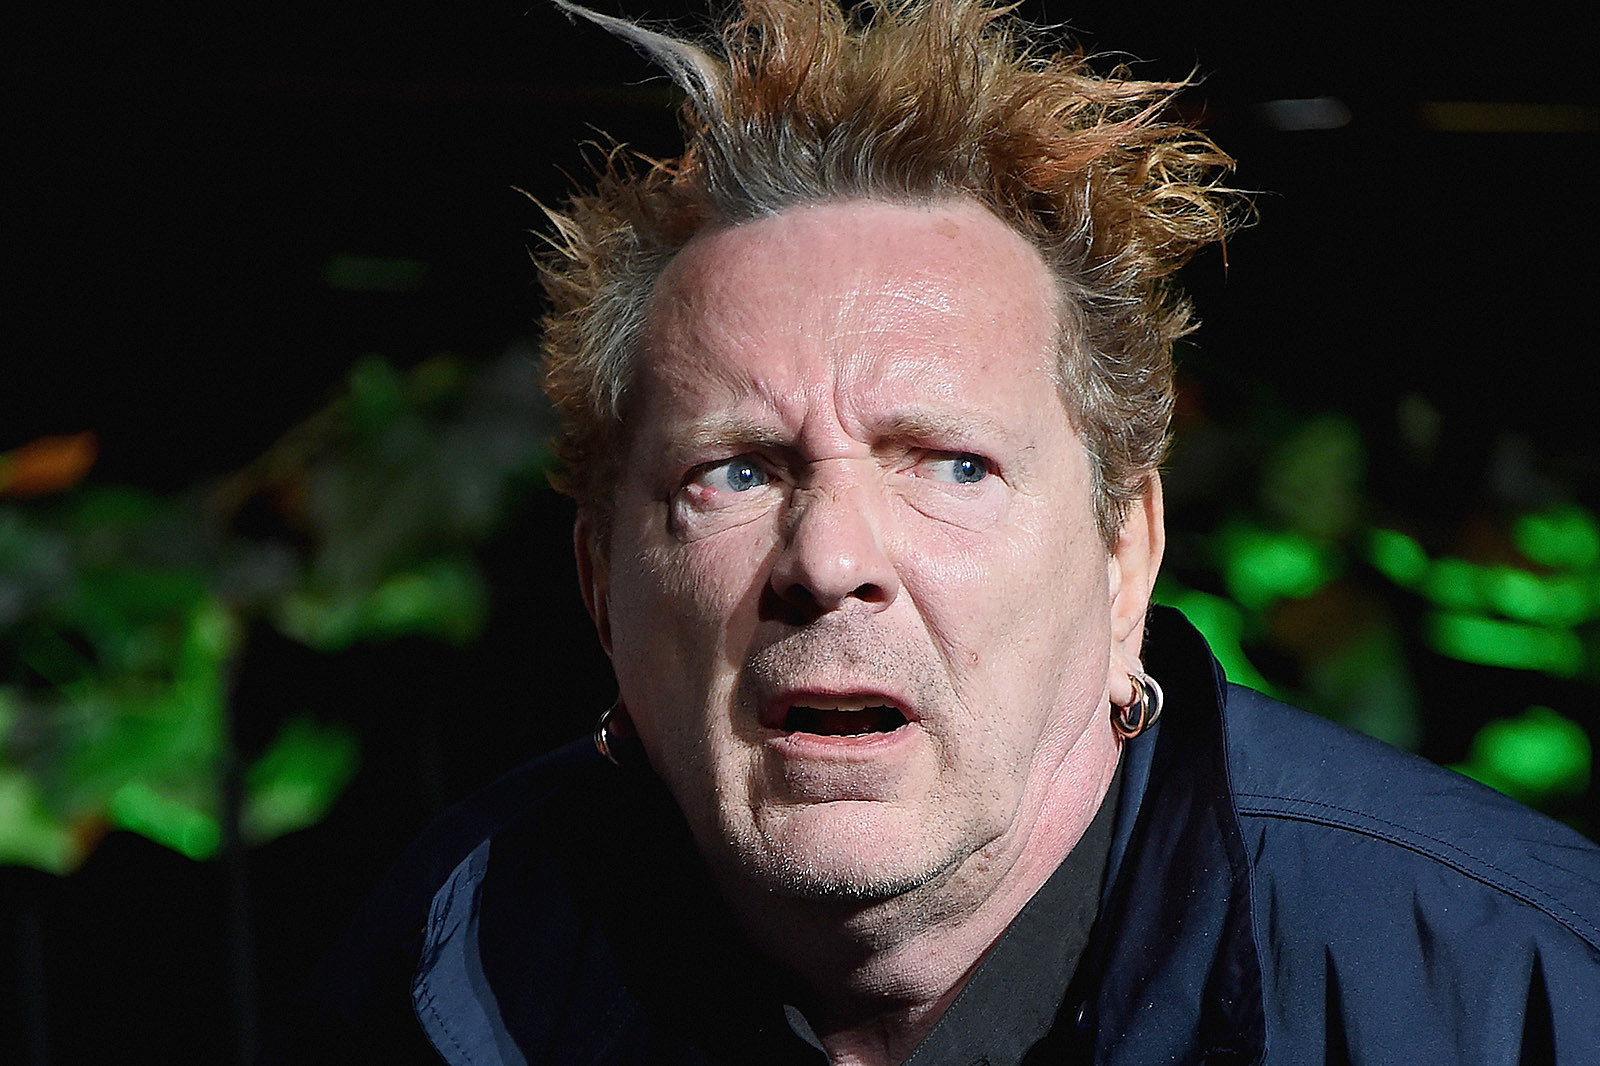 John Lydon Says Sex Pistols' Band Contract Is like 'Slave Labor'